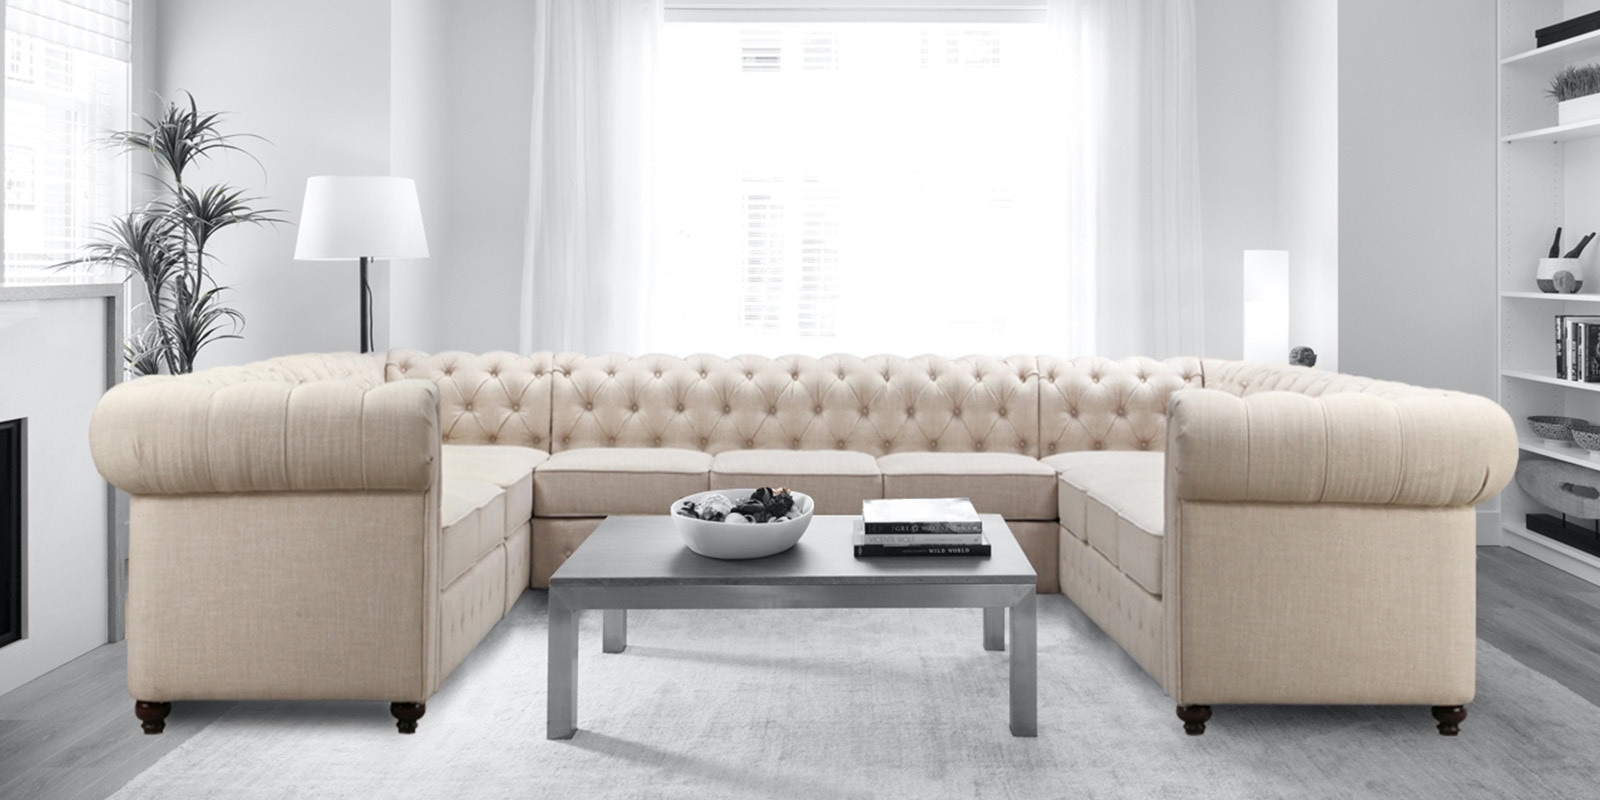 Buy Impressive Chesterfield U Shape Sectional Sofa In Beige Colour By Dreamzz Furniture Online Chesterfield Corner Sofas Sectional Sofas Furniture Pepperfry Product